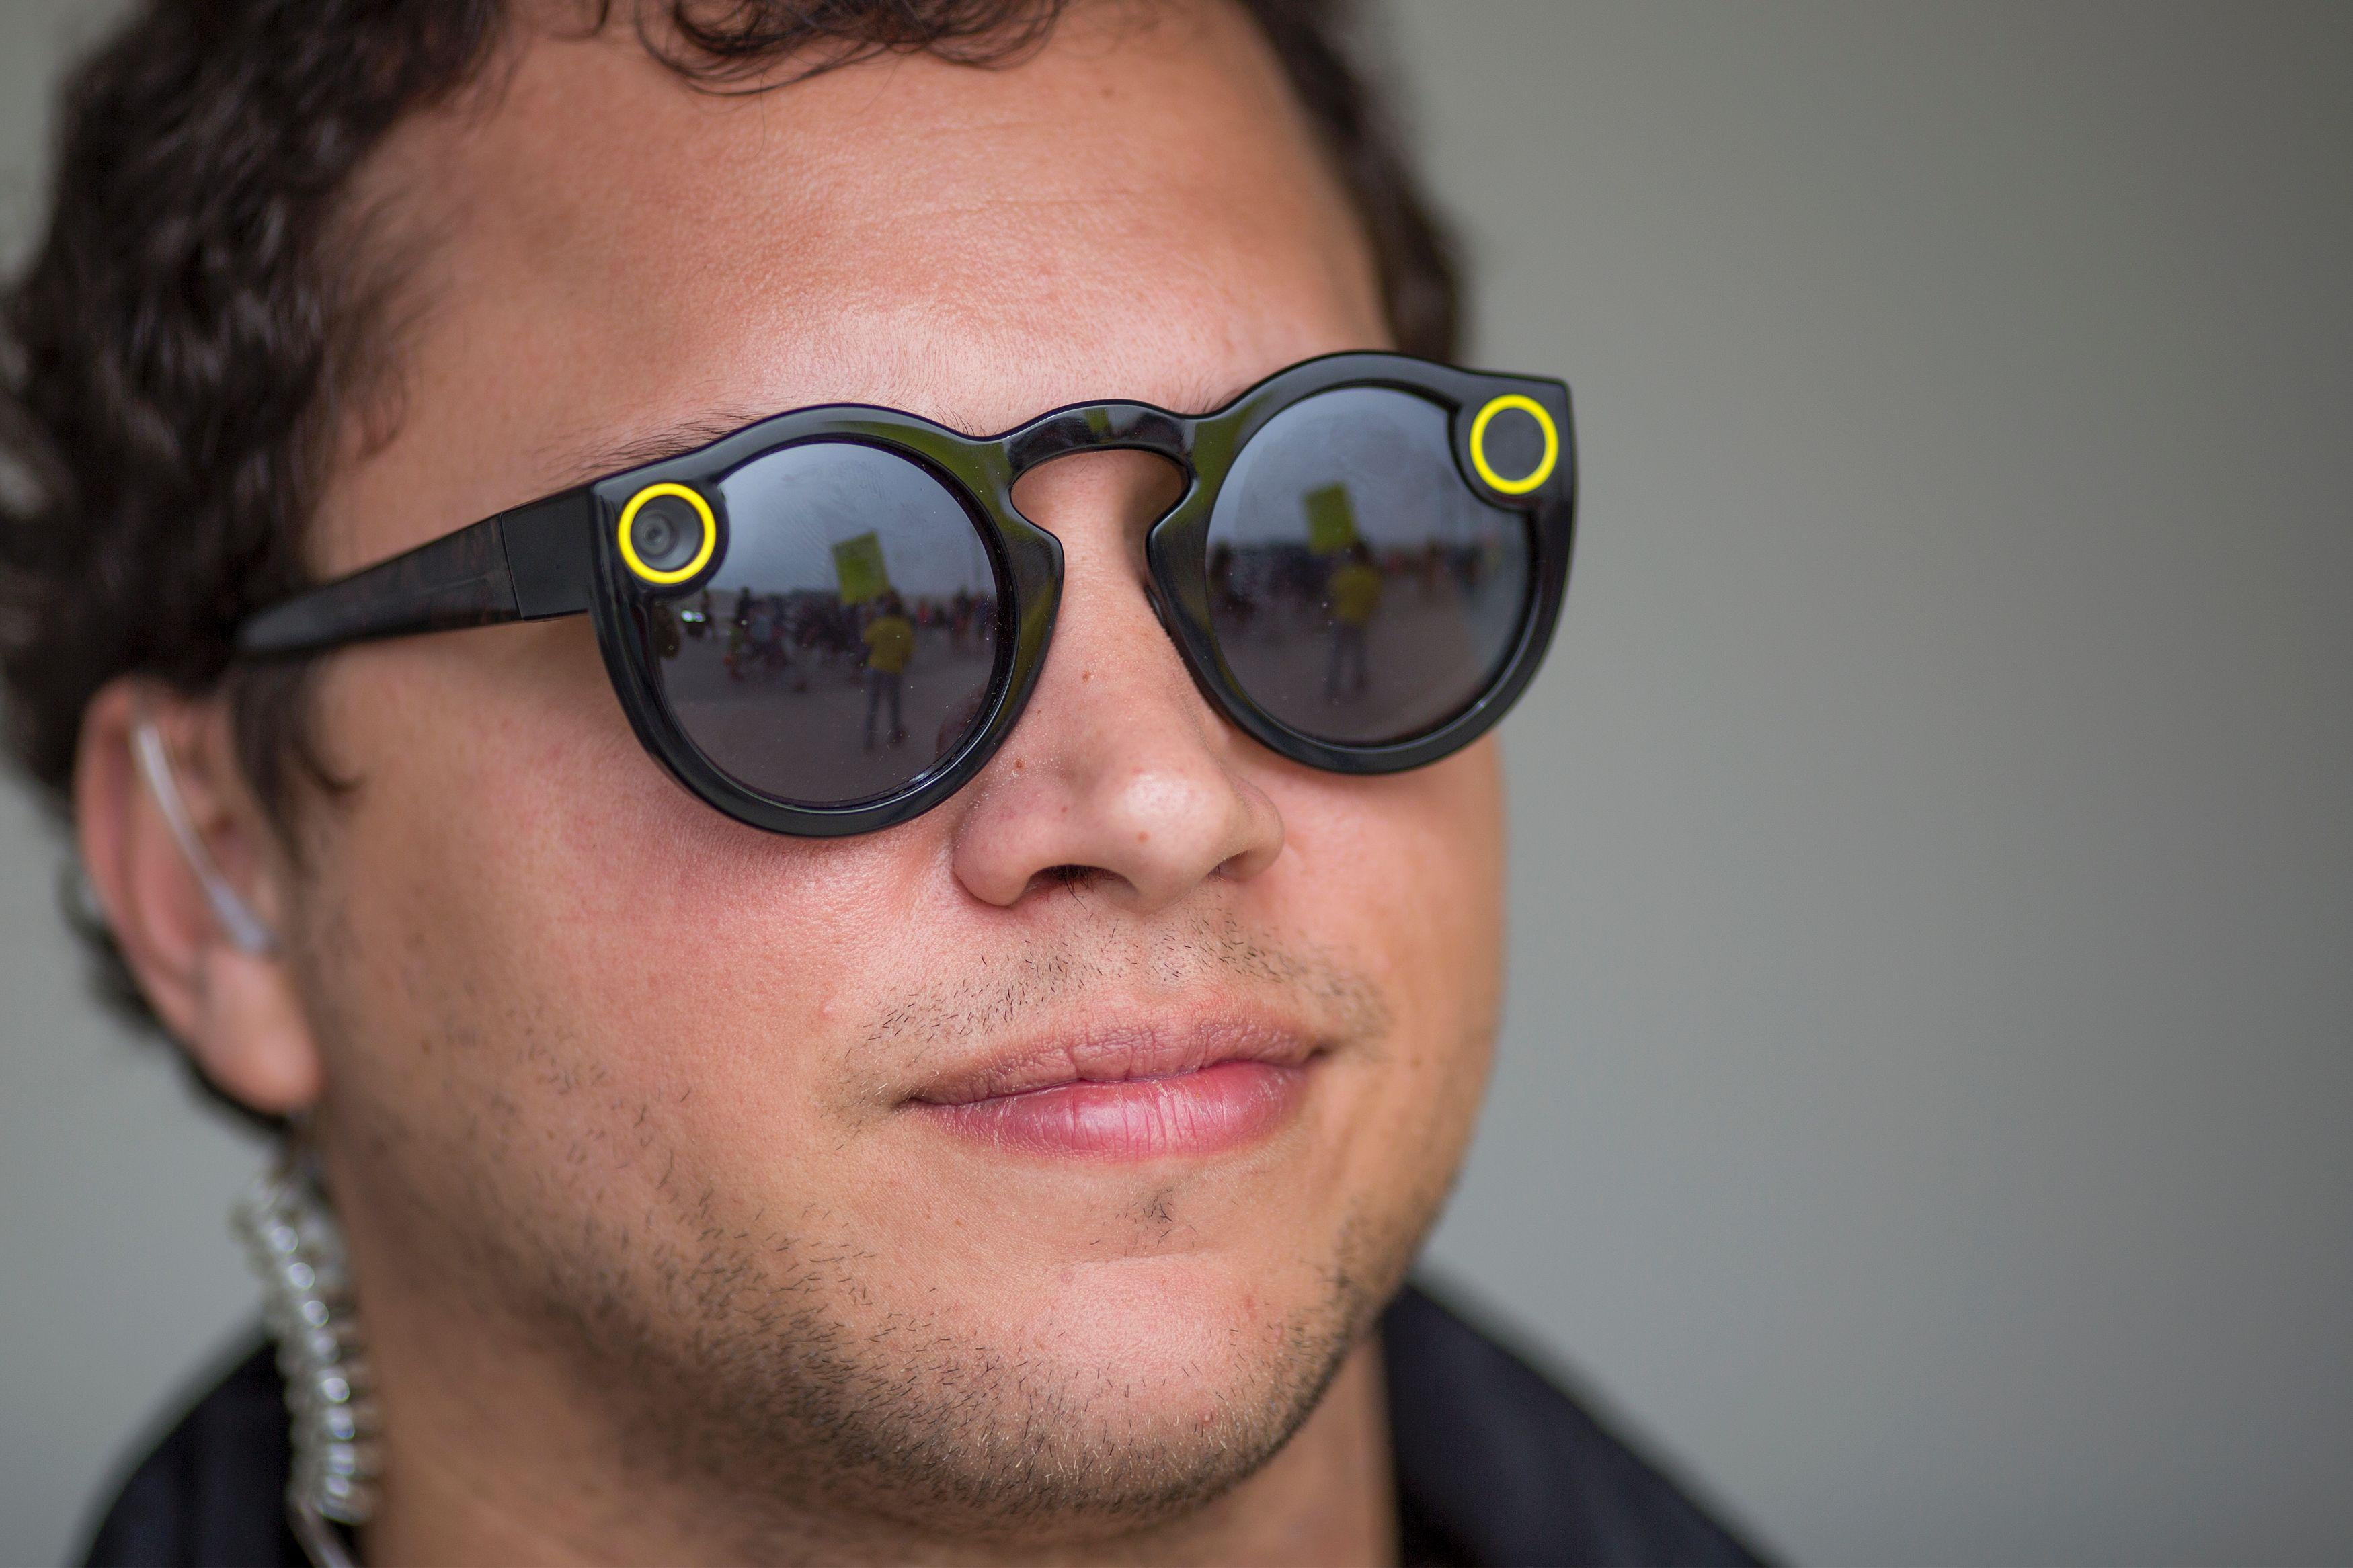 A Snap employee sports Spectacles—because no one else will.